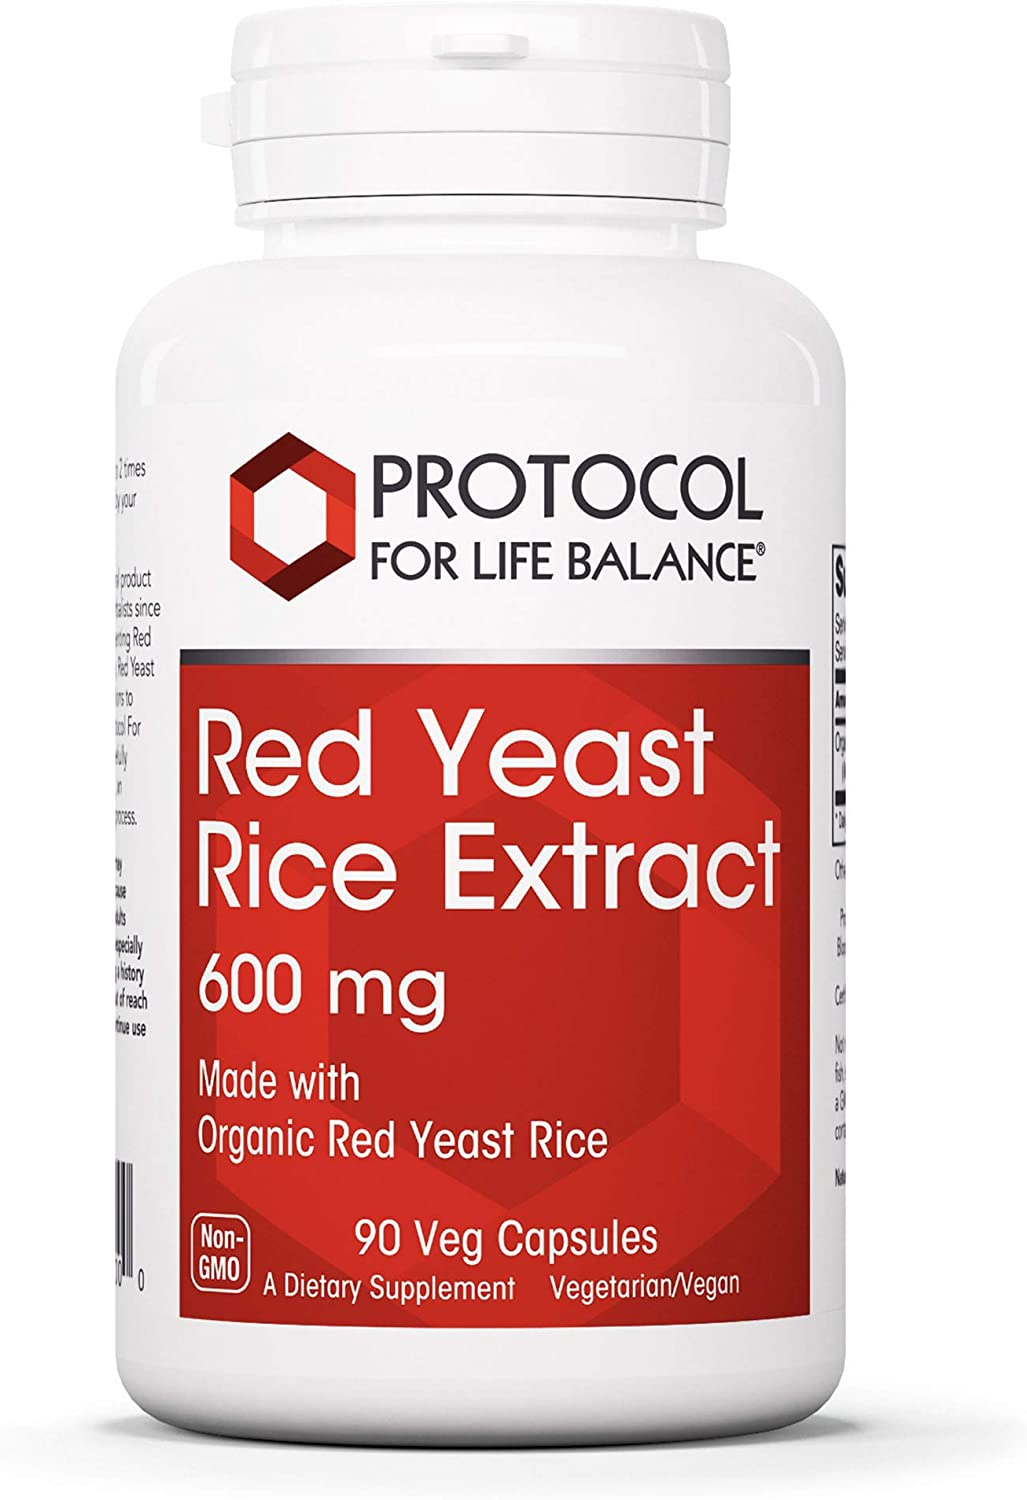 Protocol For Life Balance - Red Yeast Rice Extract 600 mg - Traditional Supplement Used for Cardiovascular Support and Healthy Cholesterol Promotion - 90 Veg Capsules: Health & Personal Care